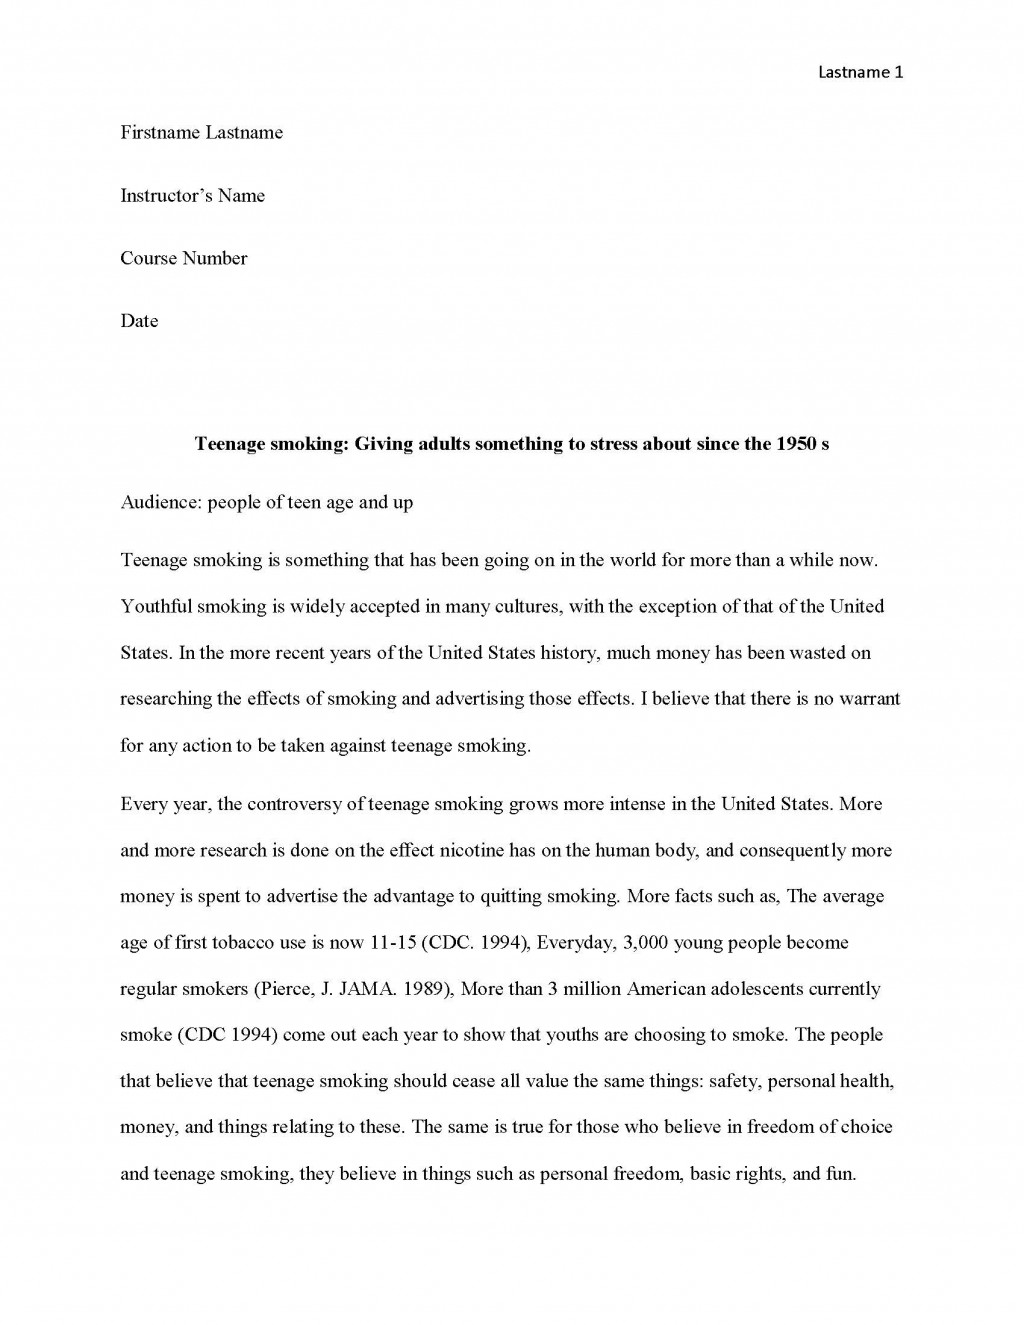 020 College Essay Word Limit Teen Smoking Free Sample Page 1 Impressive Count Admission 2019 Large